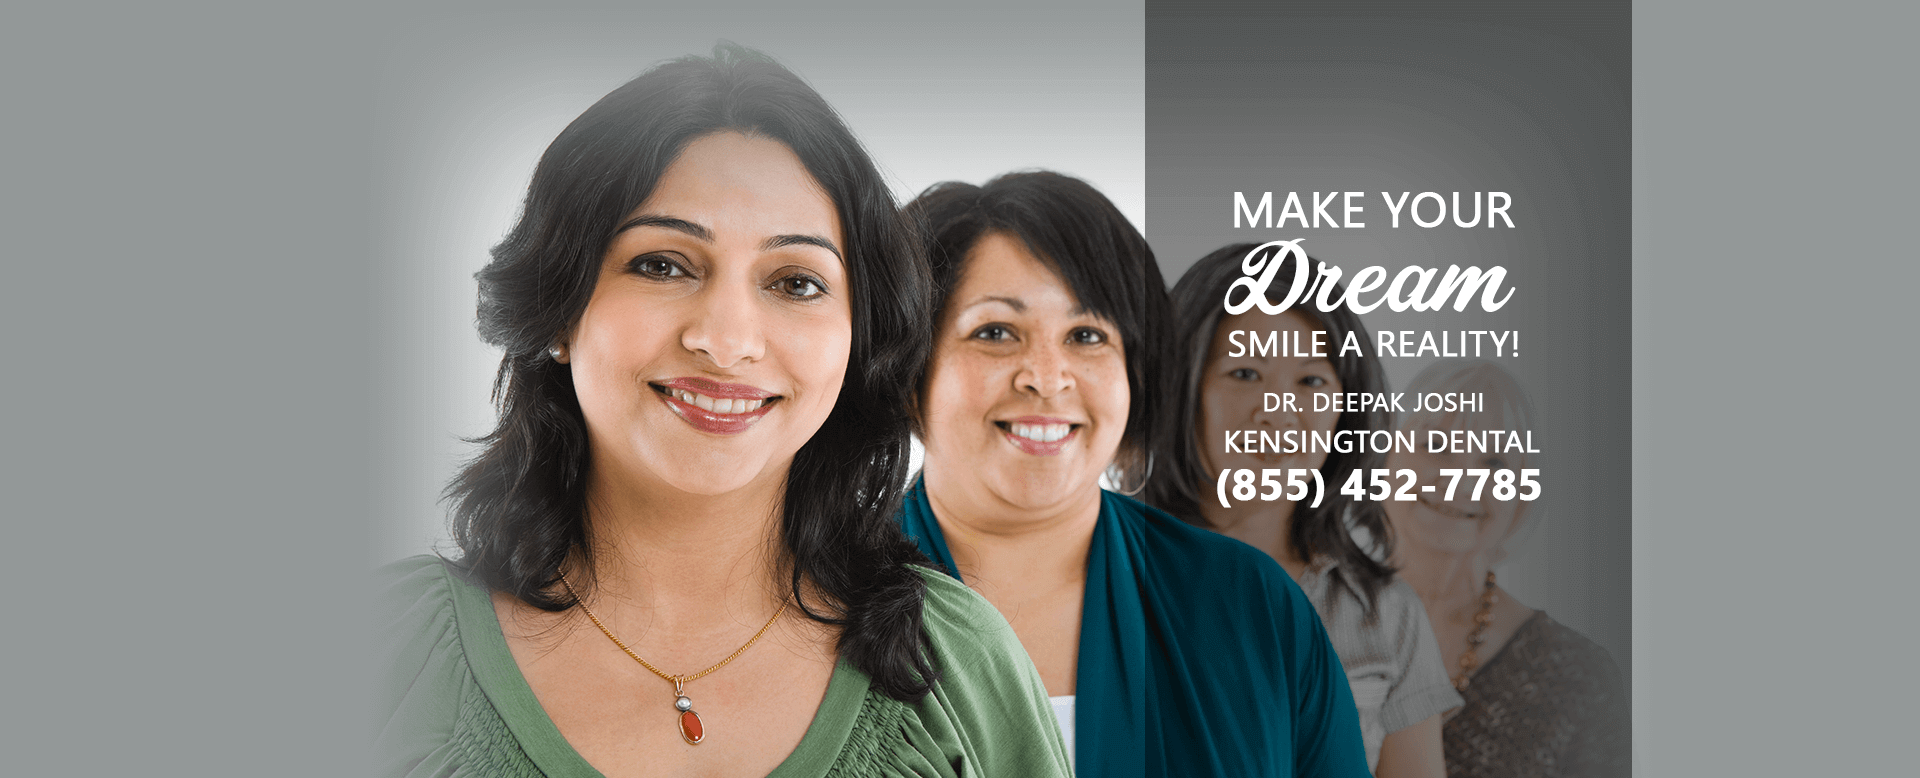 Happy family with oral health banner image at Kensington Dental with Dr. Deepak Joshi